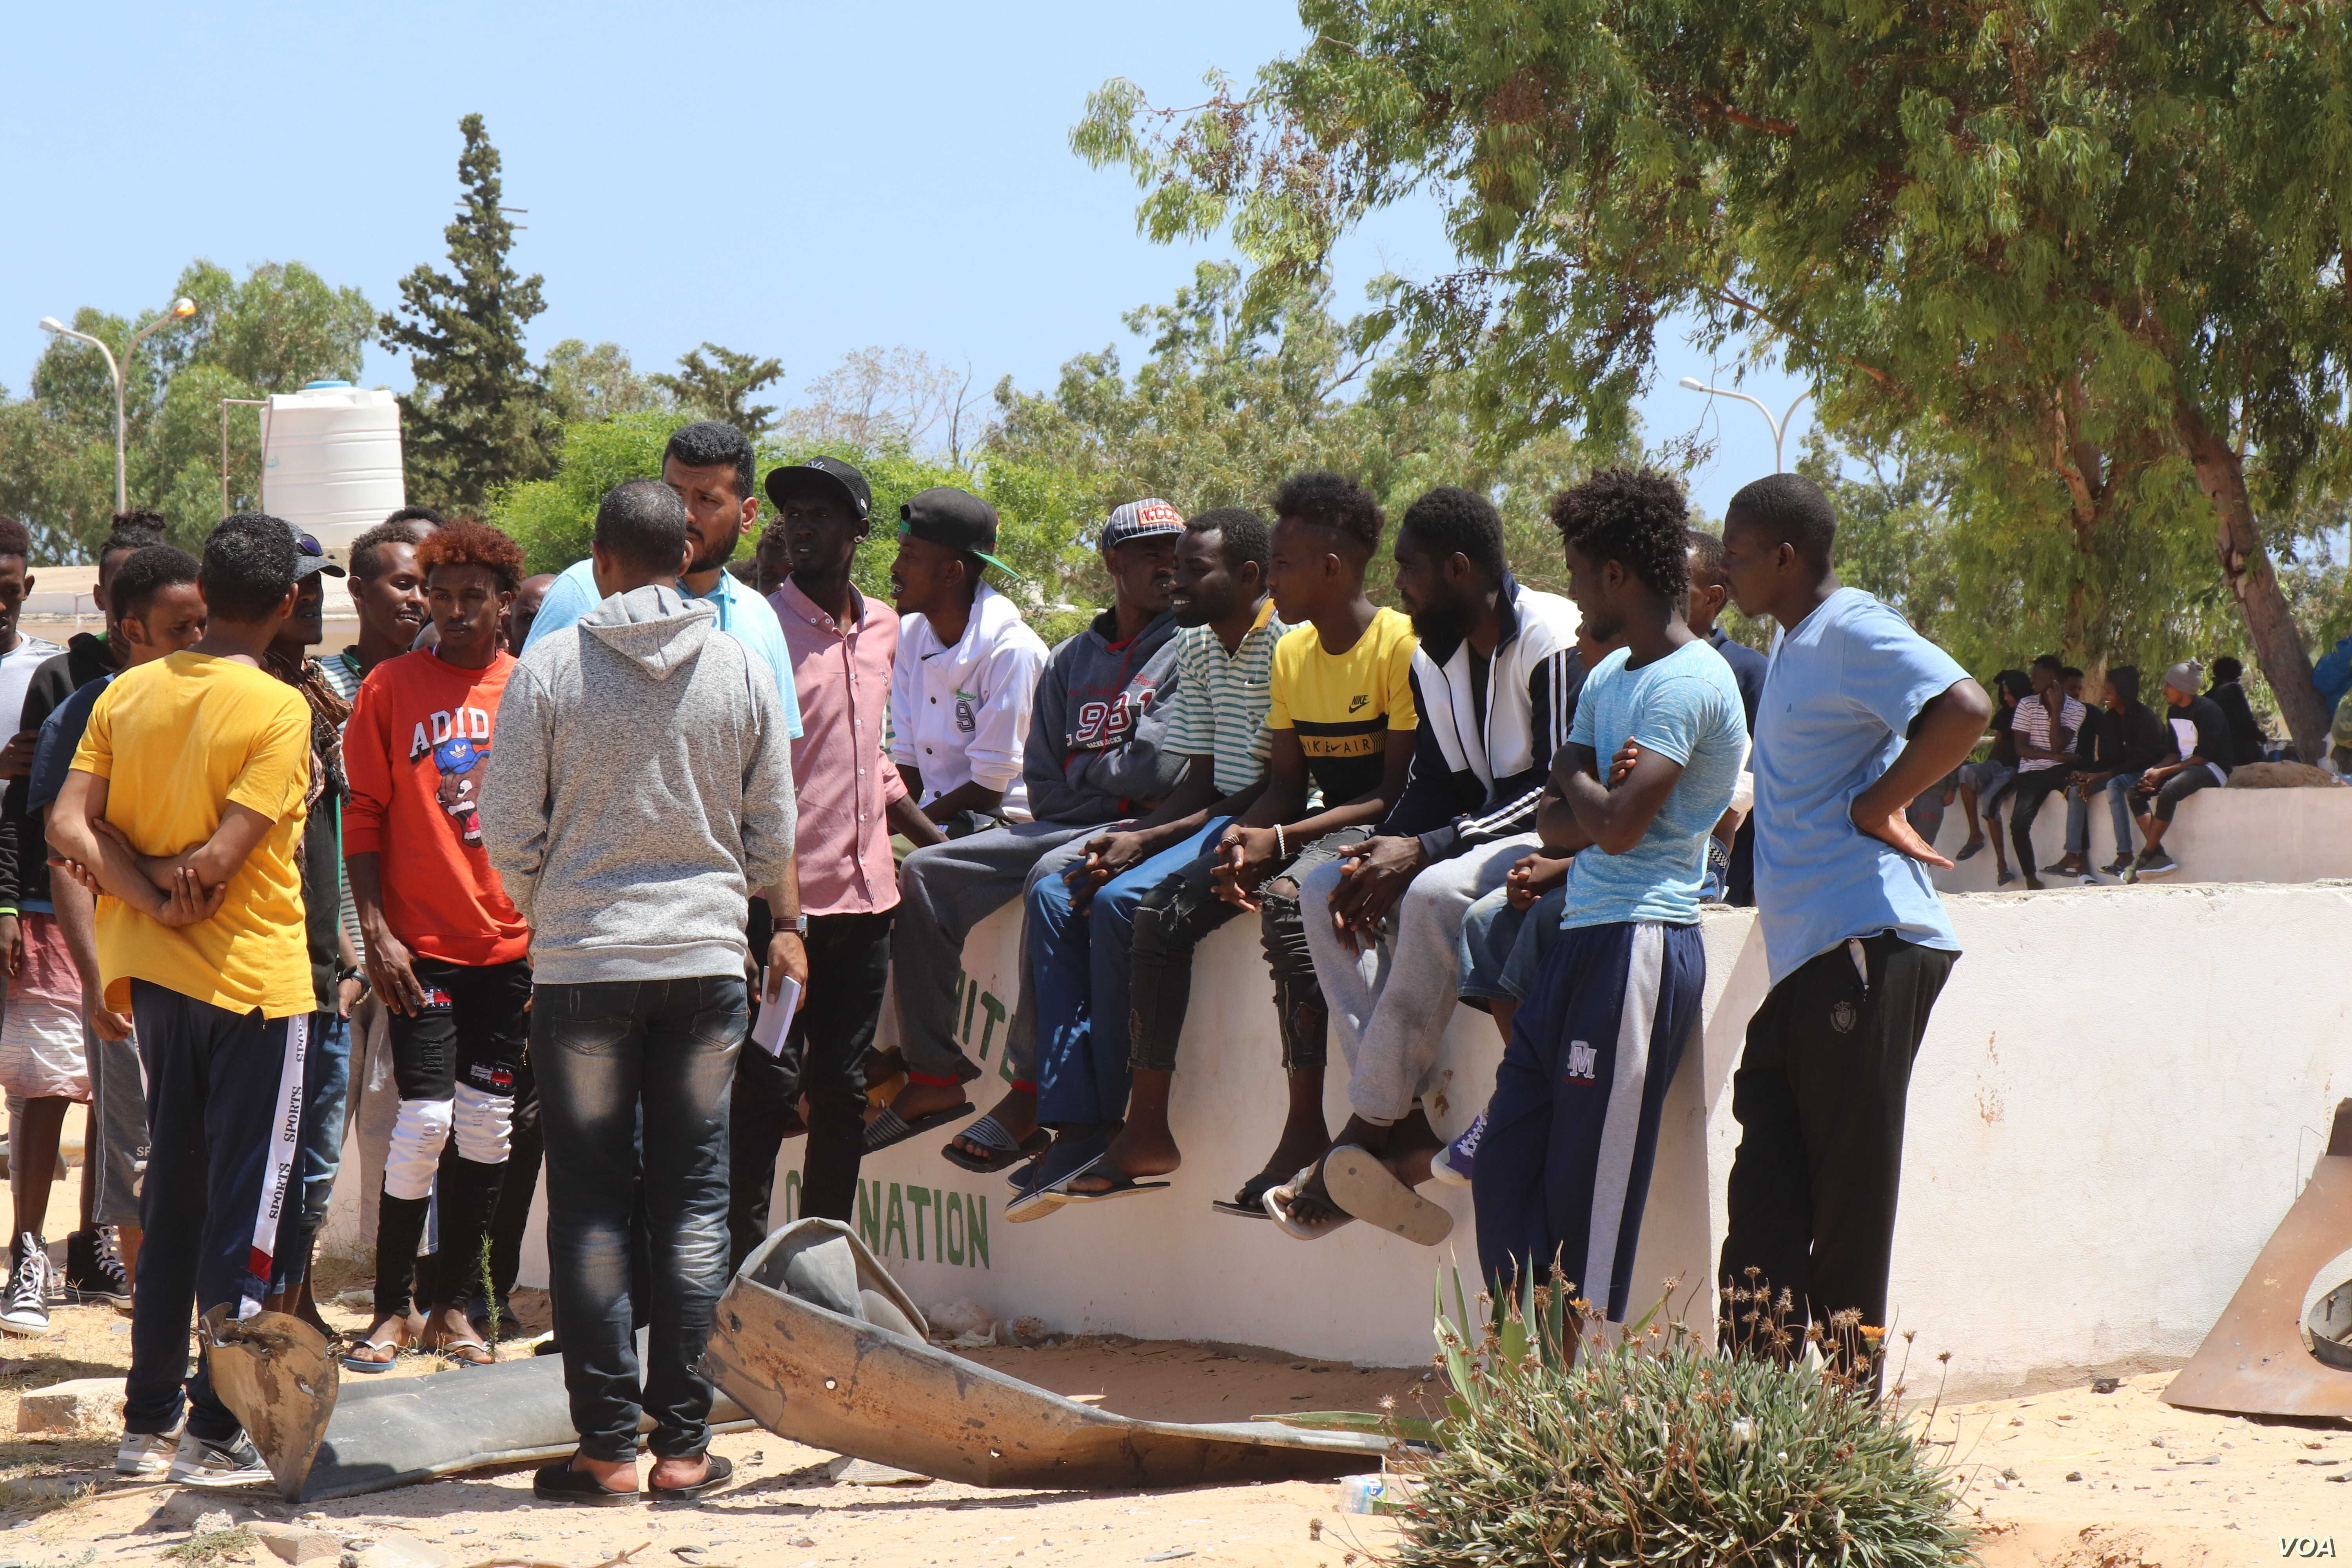 Survivors evacuated the crumbled detention center and spent the night outside while officials searched for the injured and the dead on July 3, 2019 in Tripoli, Libya (H.Murdock/VOA)